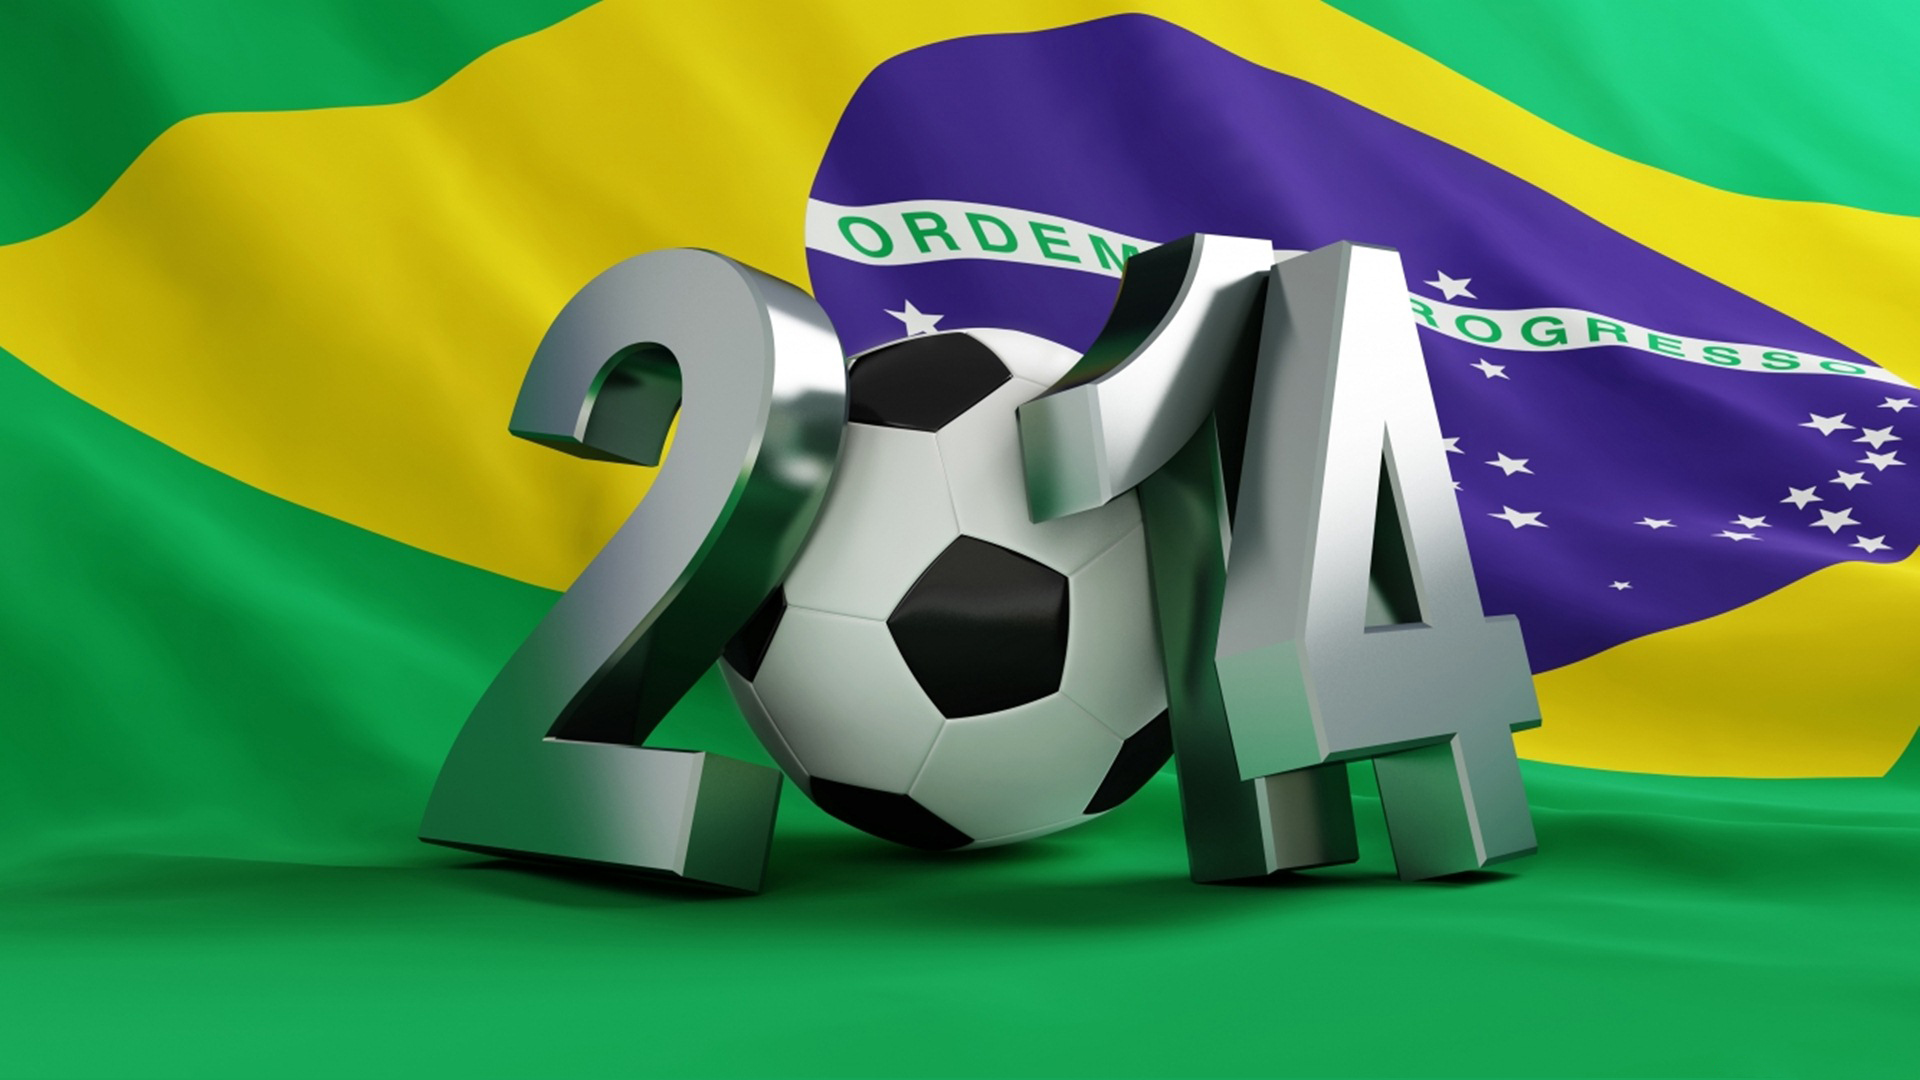 Brazil 2014 World Cup Football Stars Ipad Wallpapers Free: FIFA-World-Cup-2014